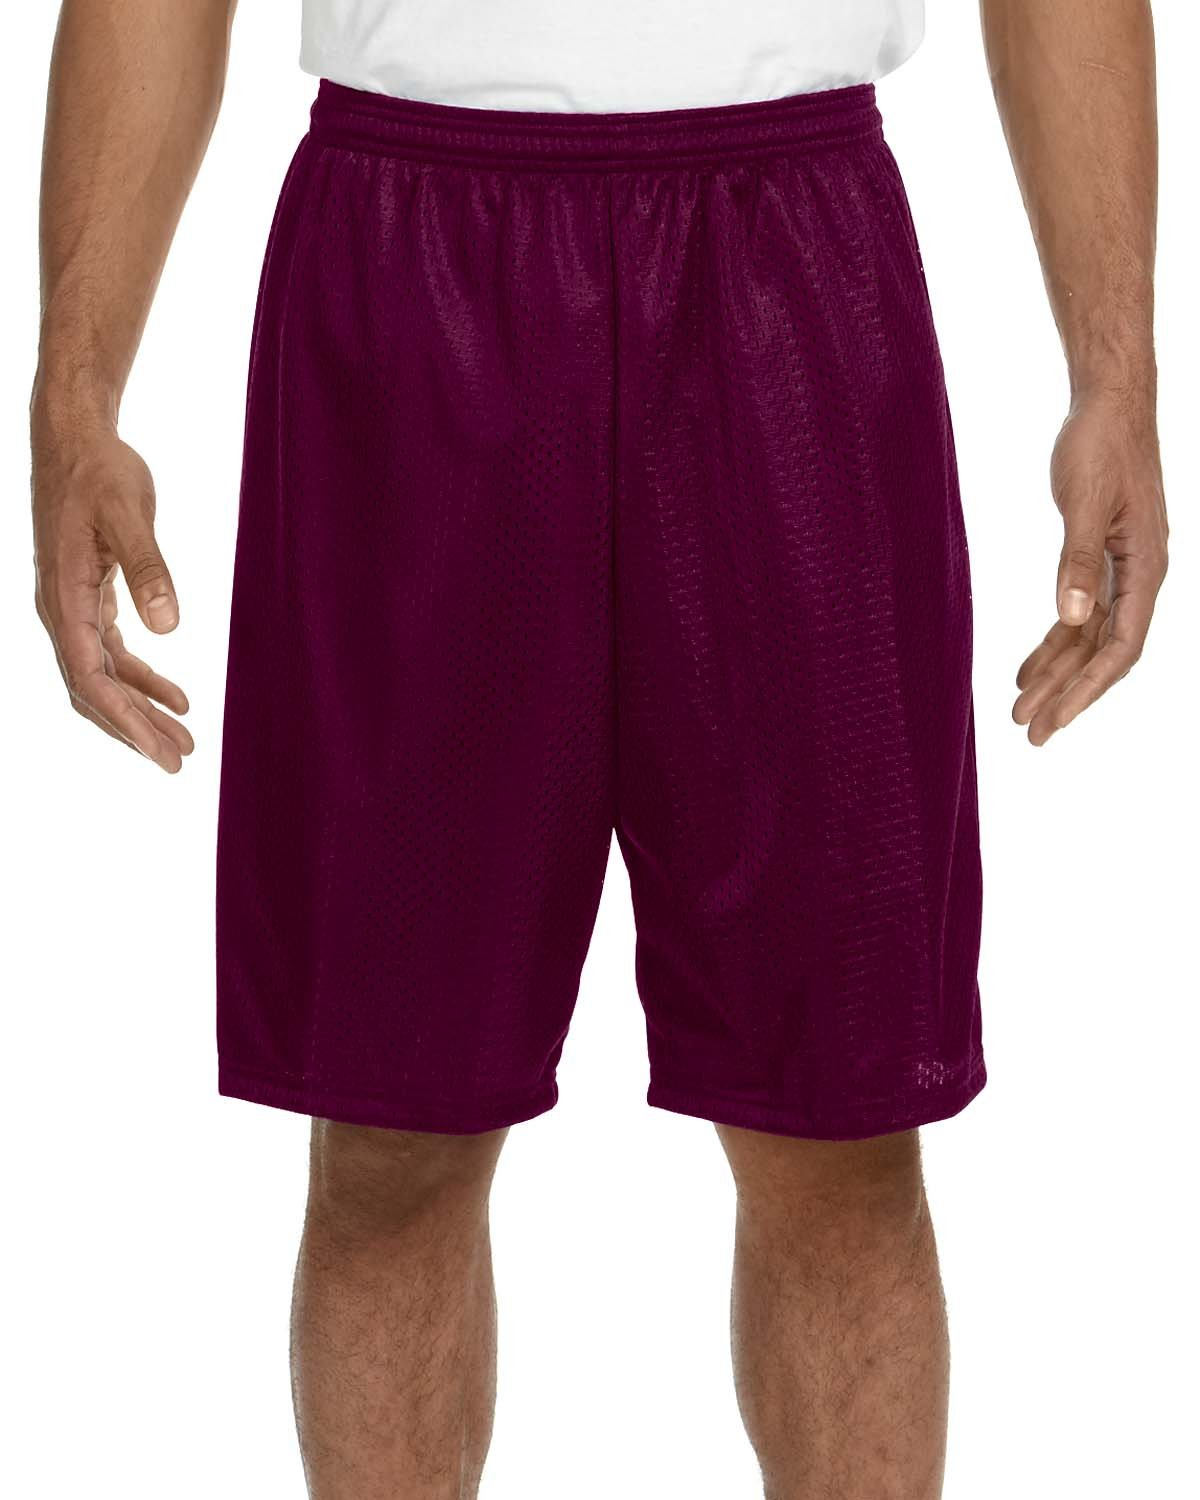 A4 Adult Tricot Mesh Short MAROON